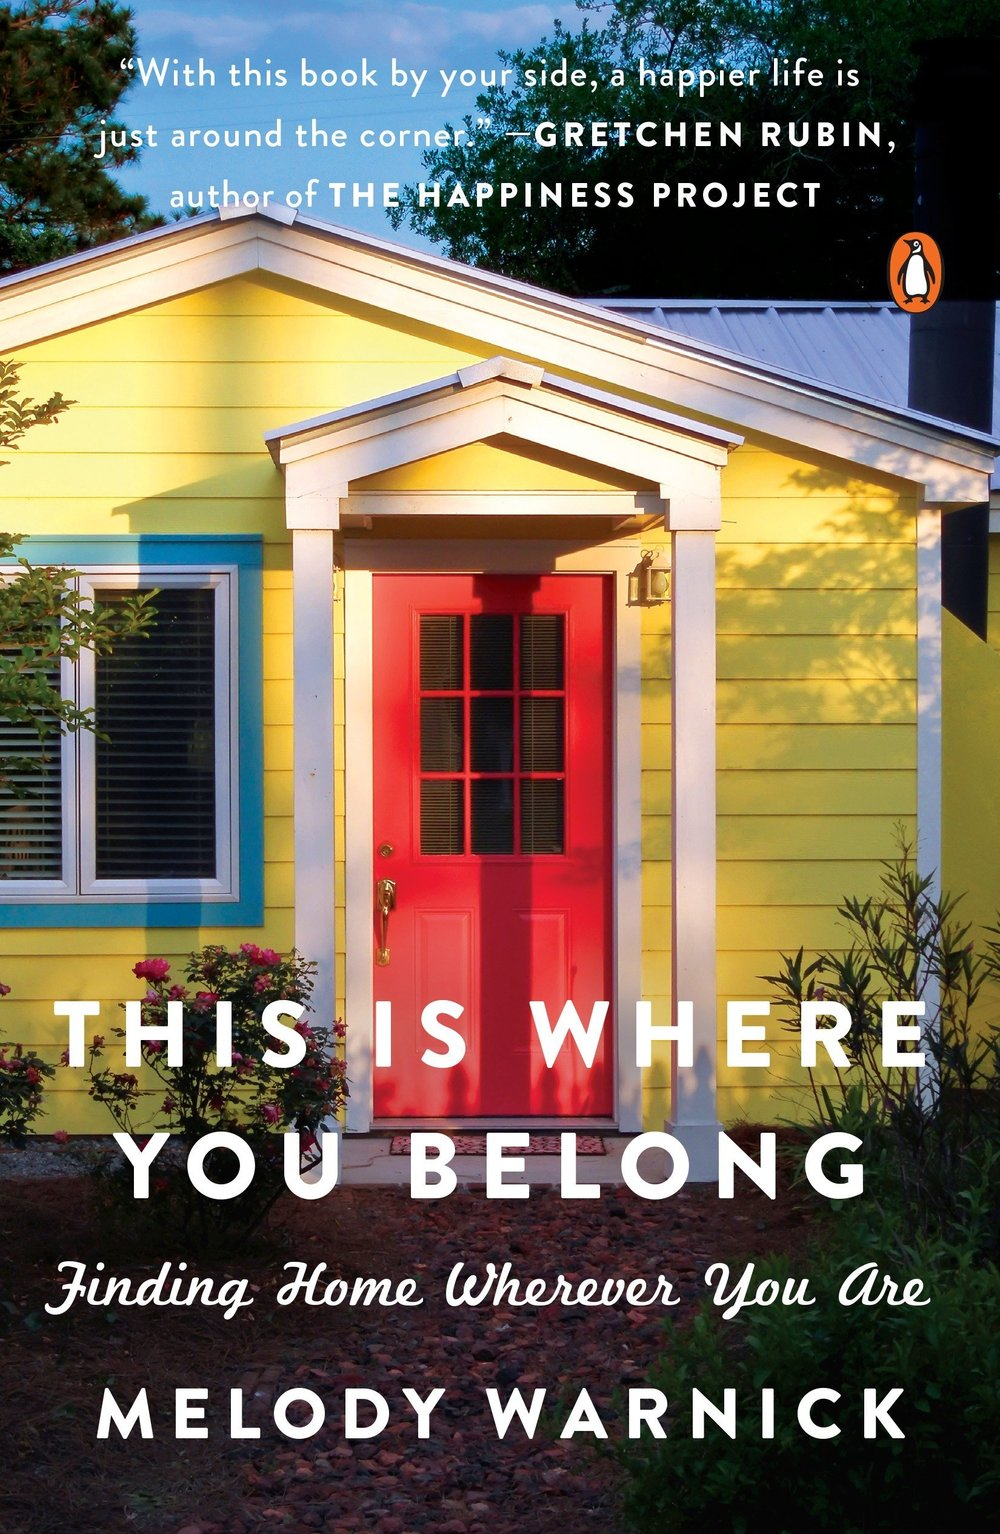 This is Where You Belong: Finding Home Wherever You Are by Melody Warnick - Topics: PCSing, HomeA journalist embarks on a project to discover what it takes to love where you live. The average restless American will move 11.7 times in a lifetime. For Melody Warnick, it was move #6, from Austin, Texas, to Blacksburg, Virginia, that threatened to unhinge her. In the lonely aftermath of unpacking, she wondered: Aren't we supposed to put down roots at some point? How does the place we live become the place we want to stay? This time, she had an epiphany. Rather than hold her breath and hope this new town would be her family's perfect fit, she would figure out how to fall in love with it—no matter what.